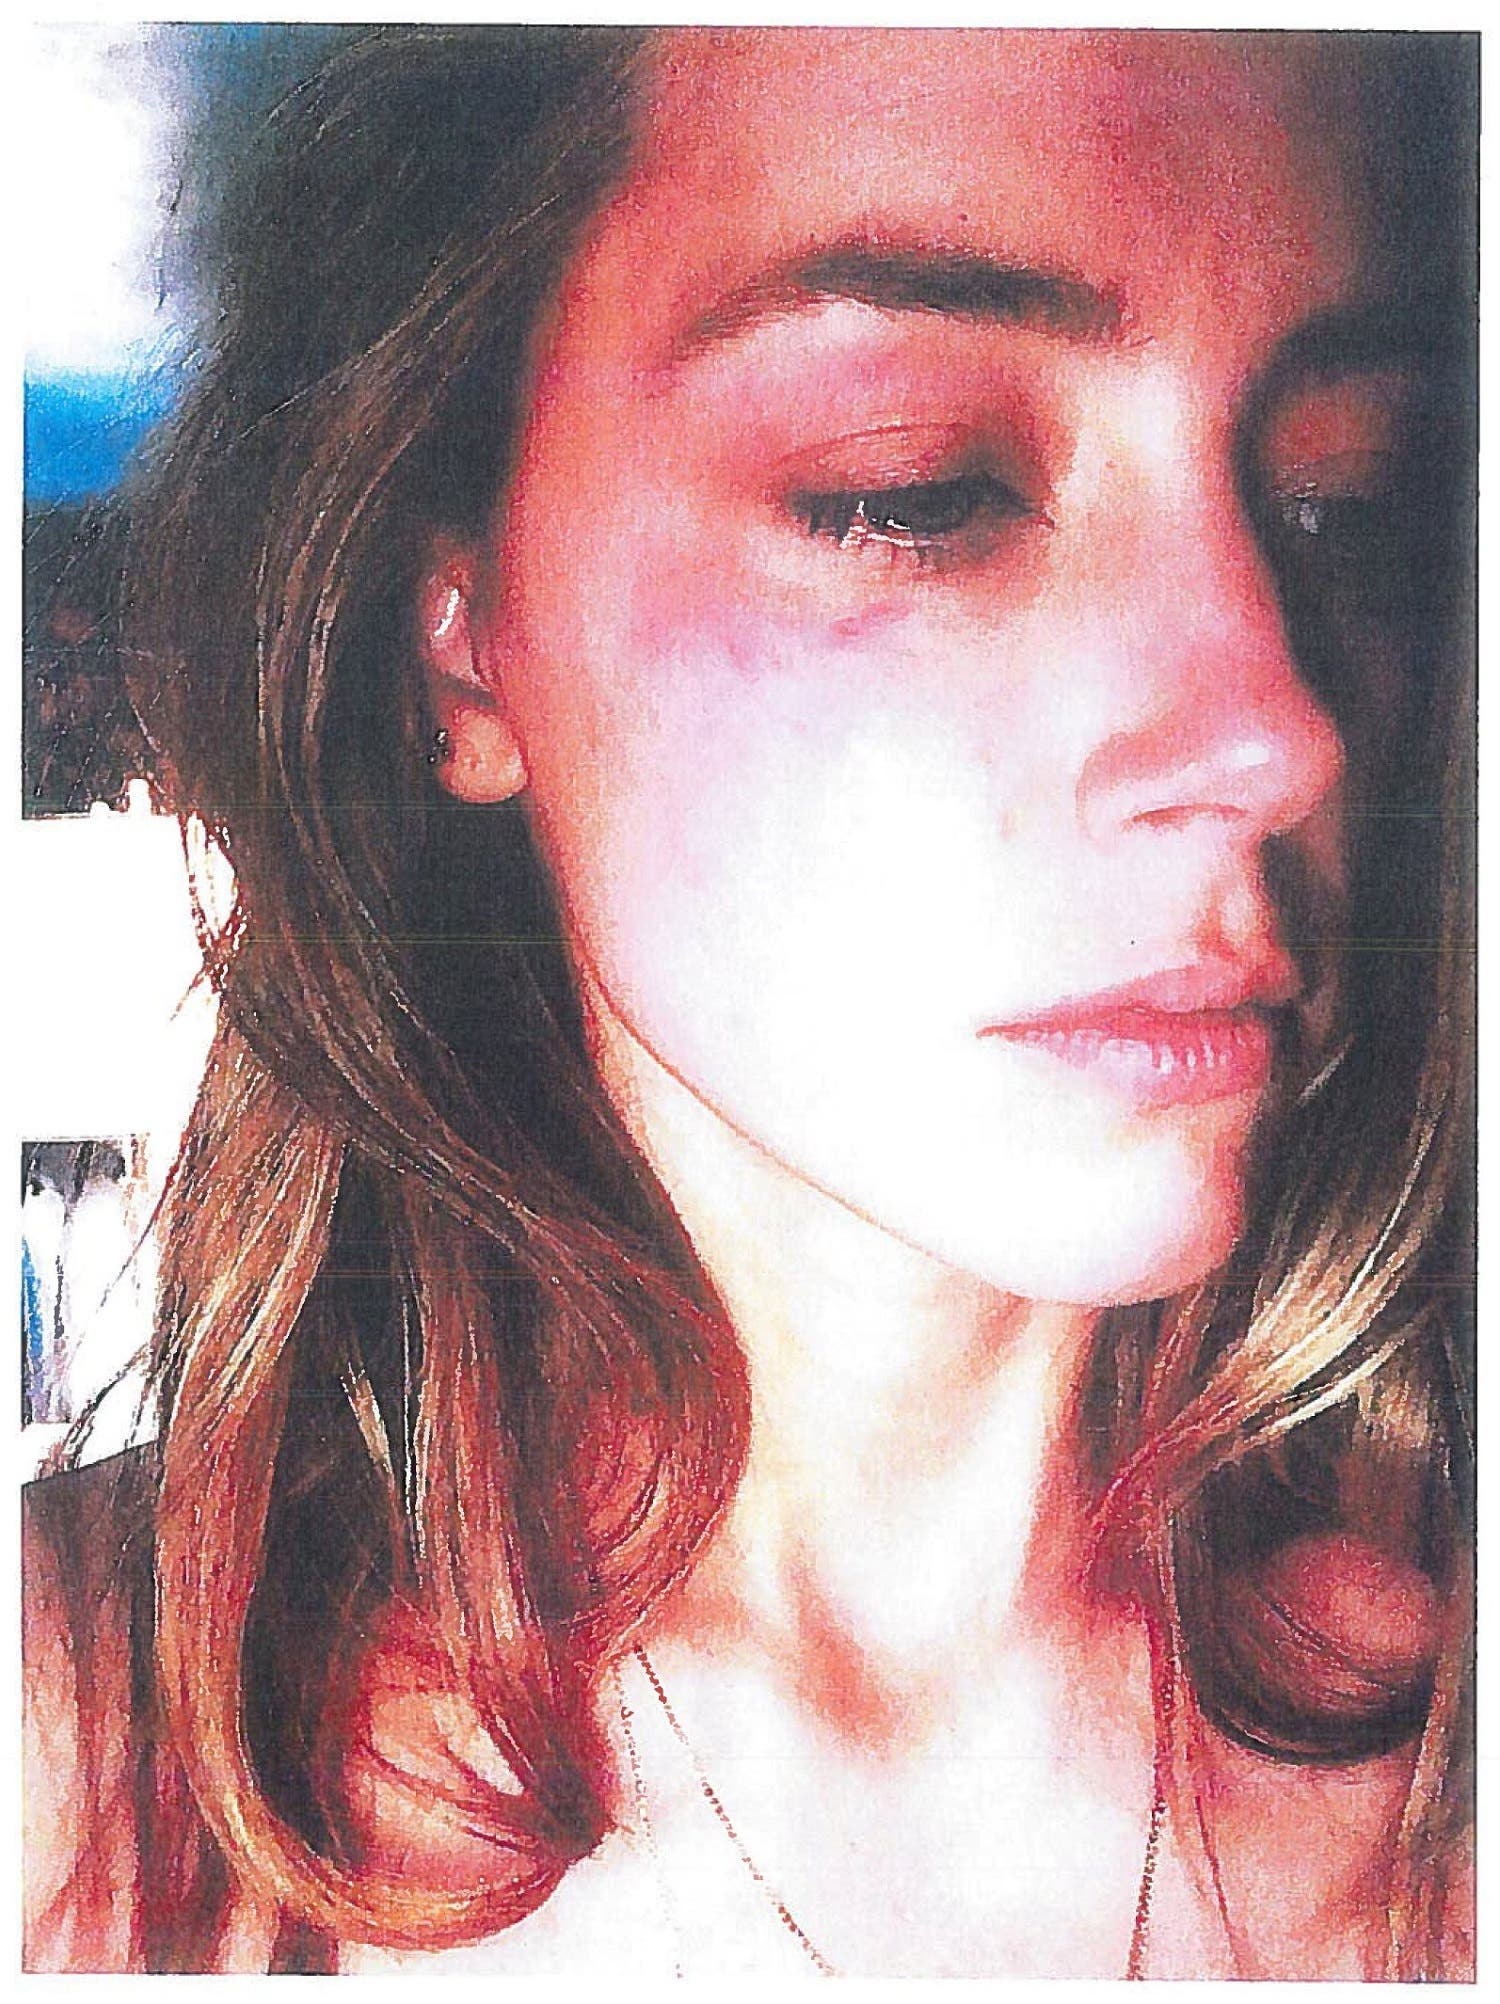 Actress Amber Heard is pictured in Los Angeles, California, U.S. with what appears to be bruising on her right cheek in an undated handout photograph included in a court filing for a restraining order against husband Johnny Depp. Superior Court of Los Angeles/Handout via Reuters